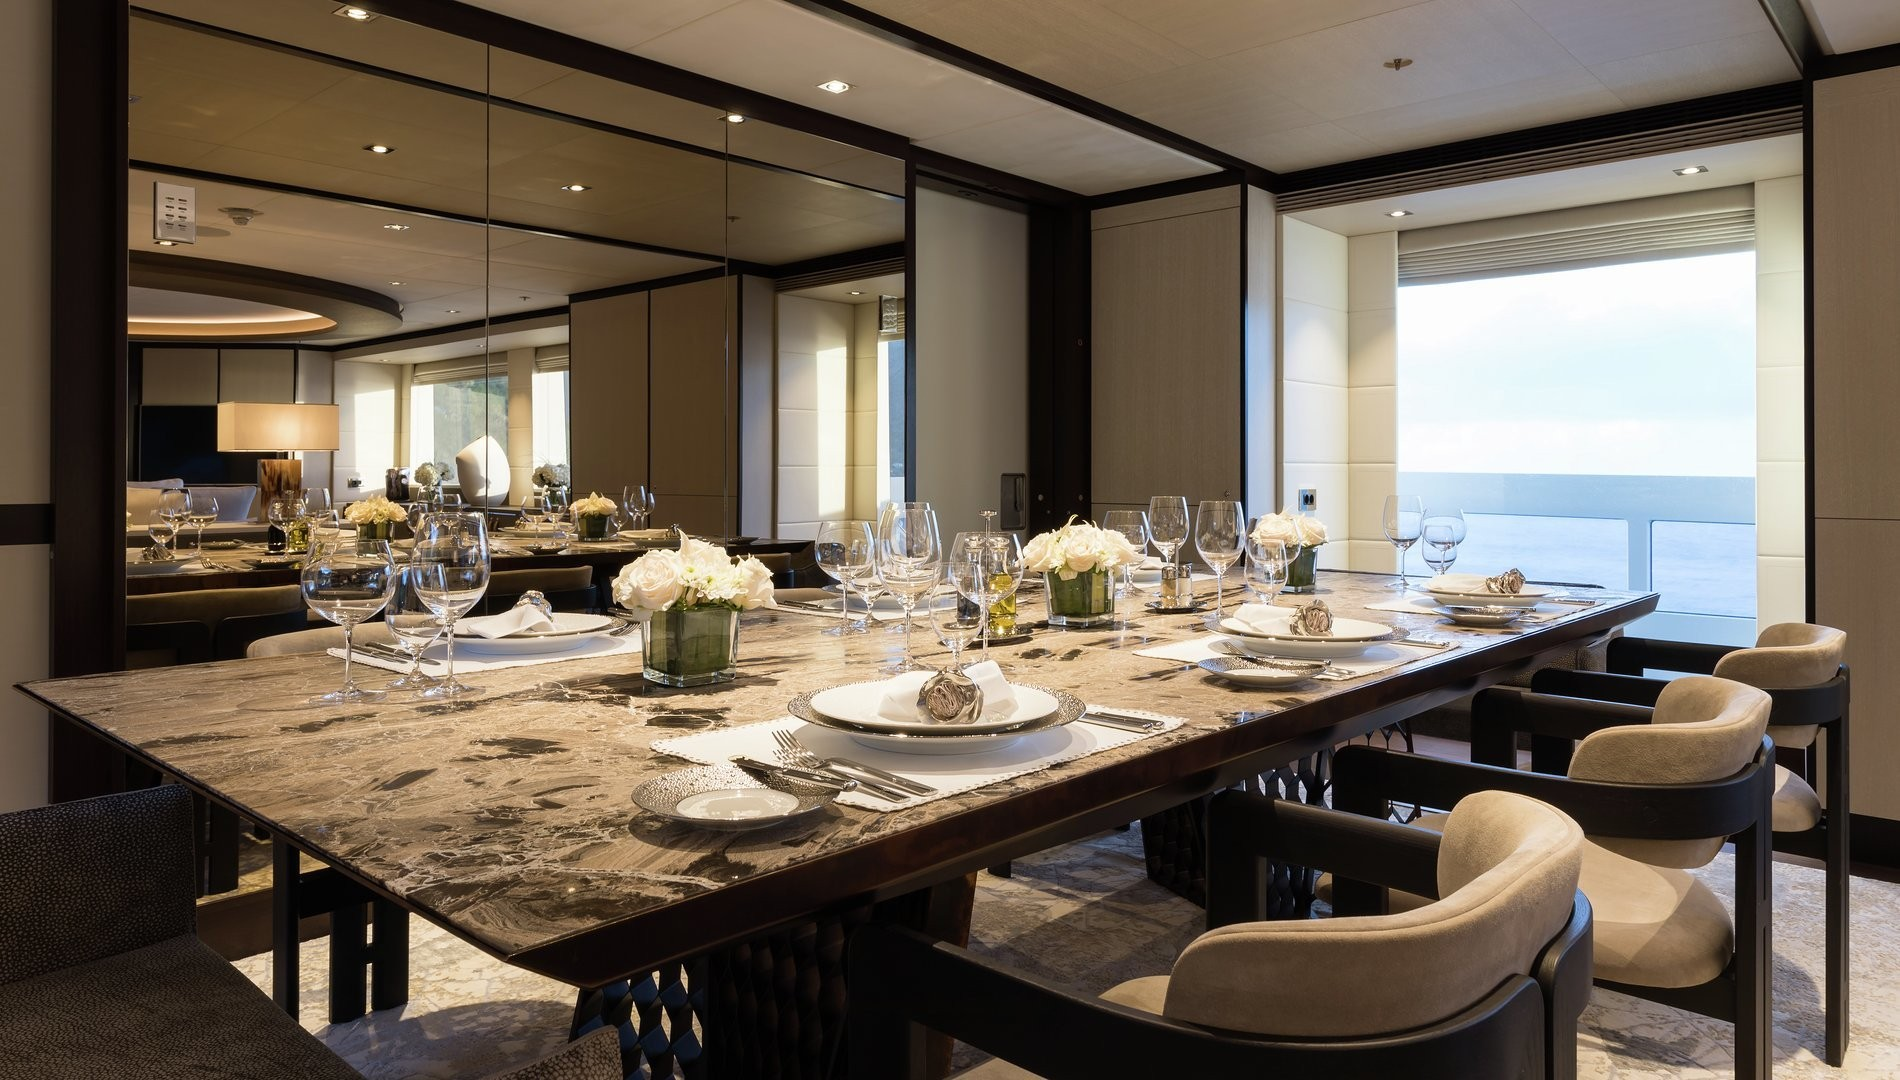 Elegant dining area to welcome all guests for a formal meal